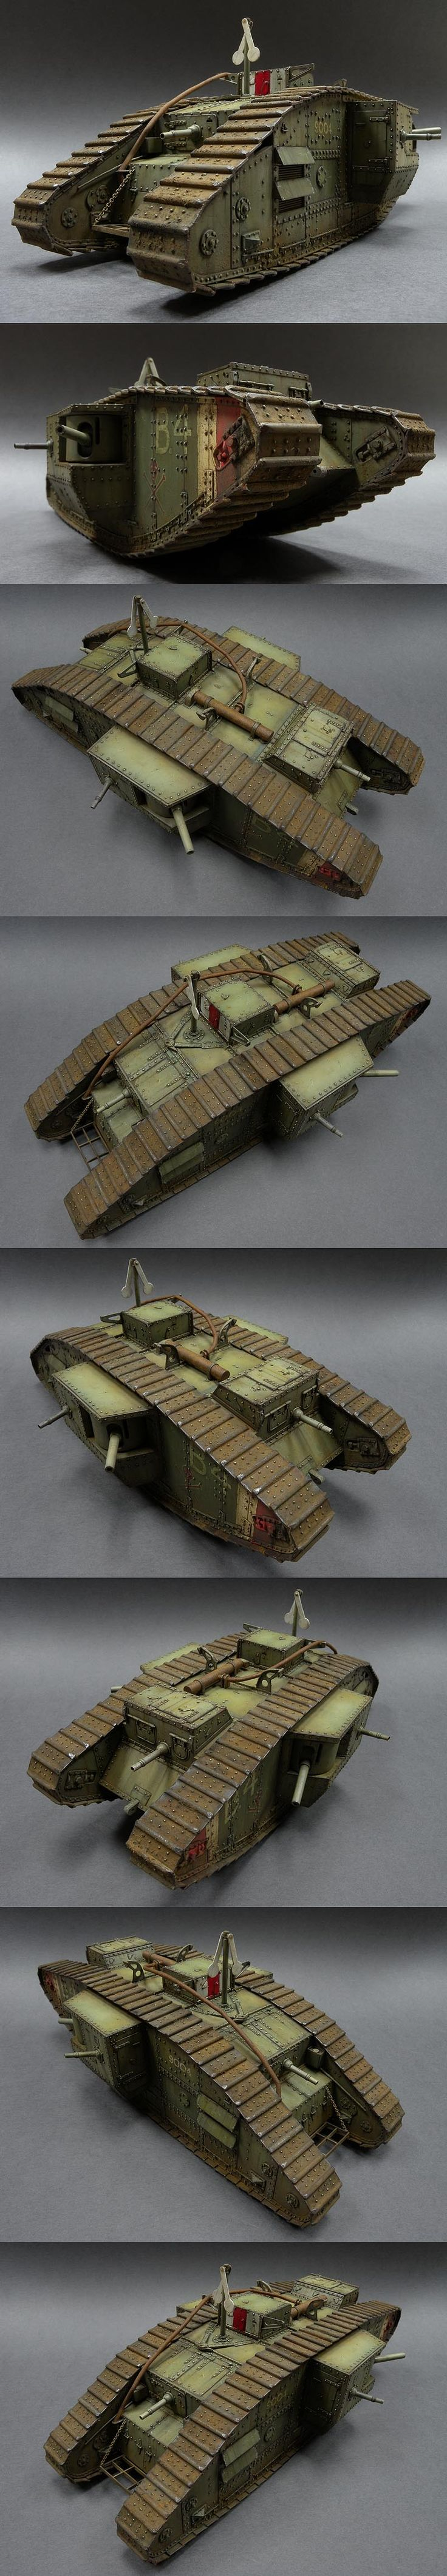 124 best Early tanks images on Pinterest